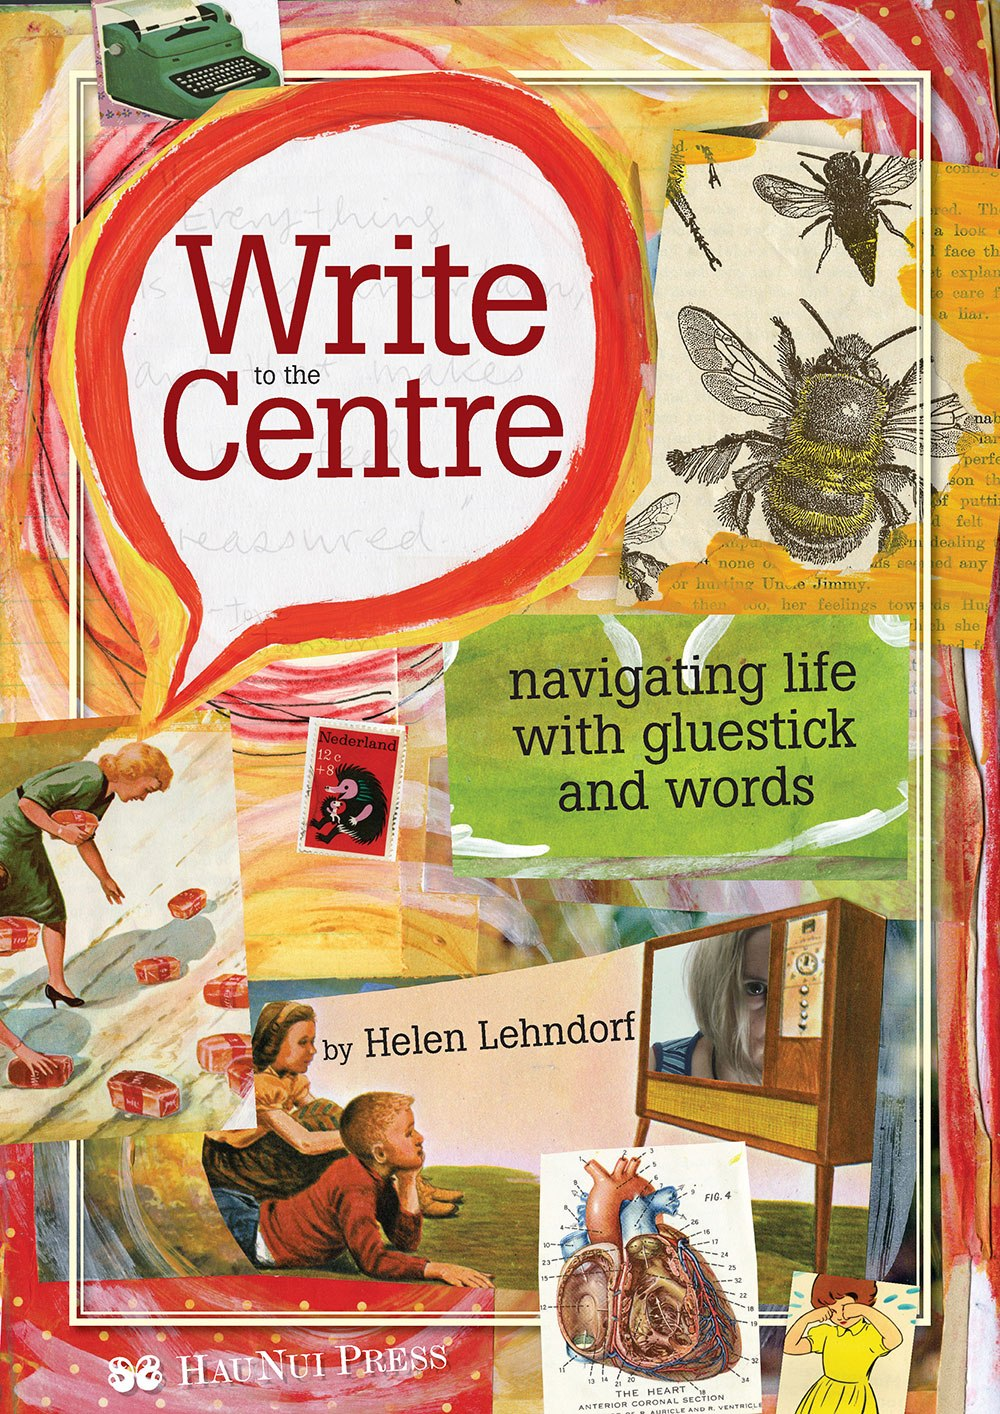 A Copy Of 'Write To The Centre' By Helen Lehndorf